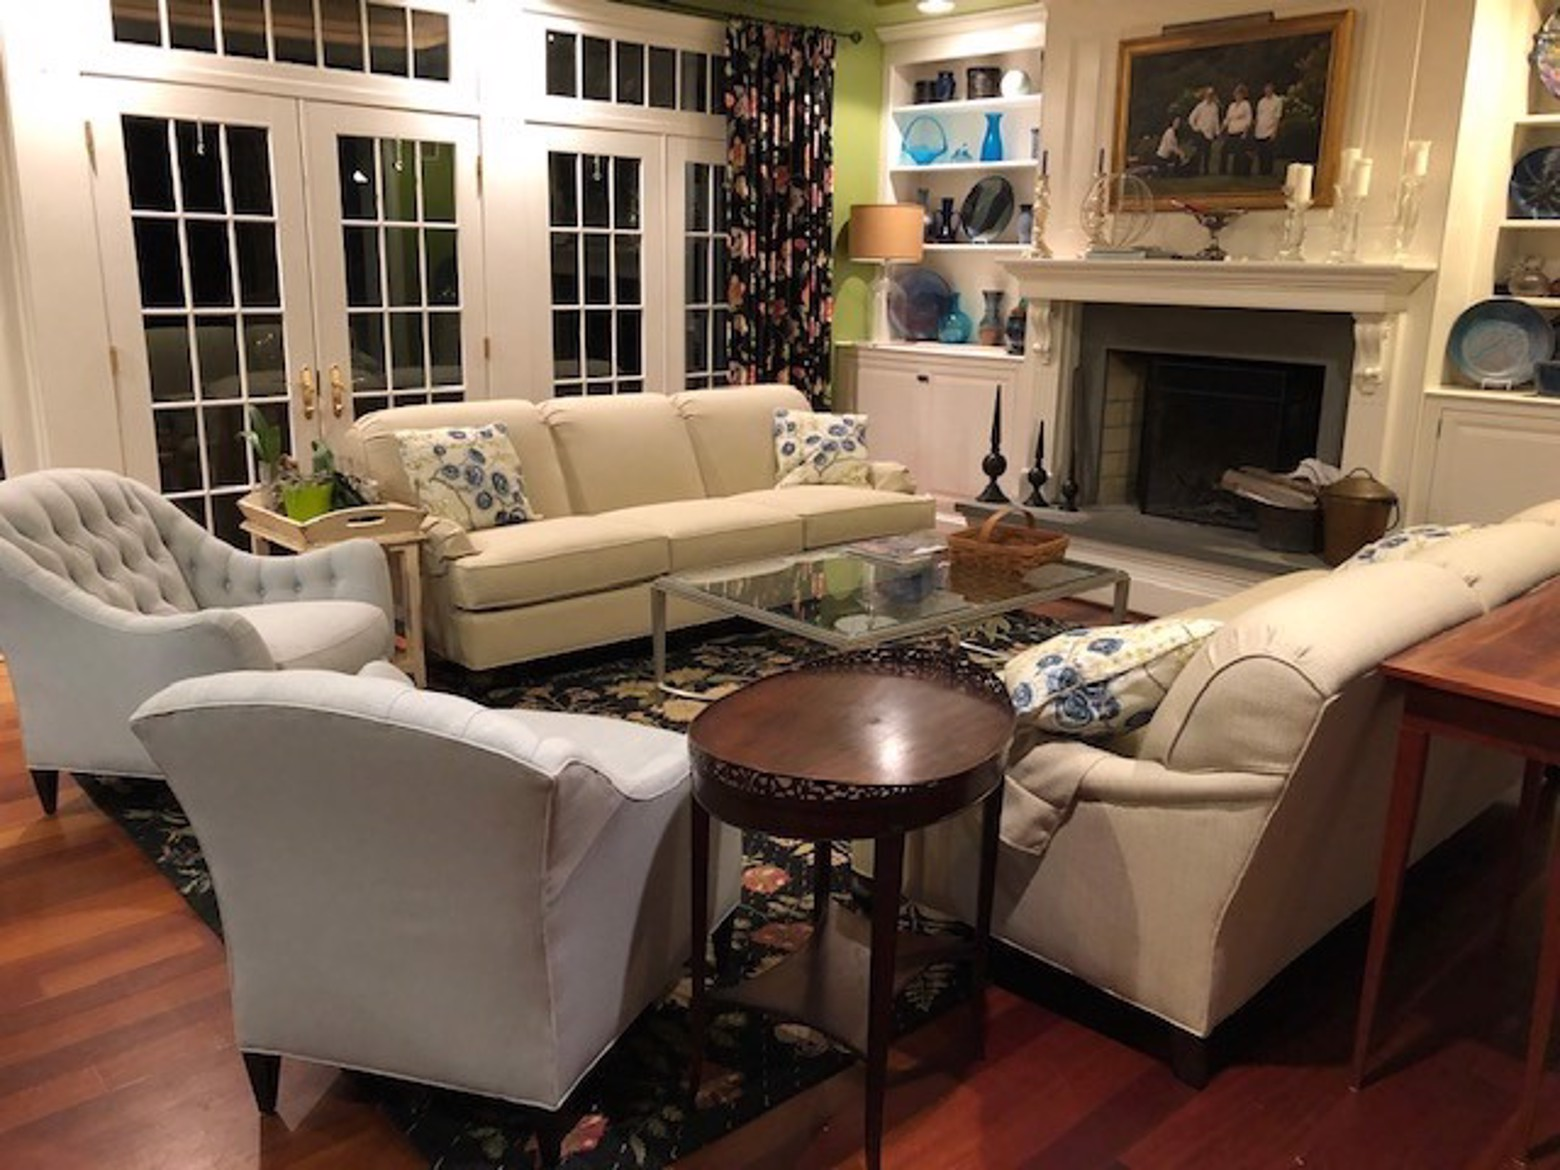 MD family room.jpg image